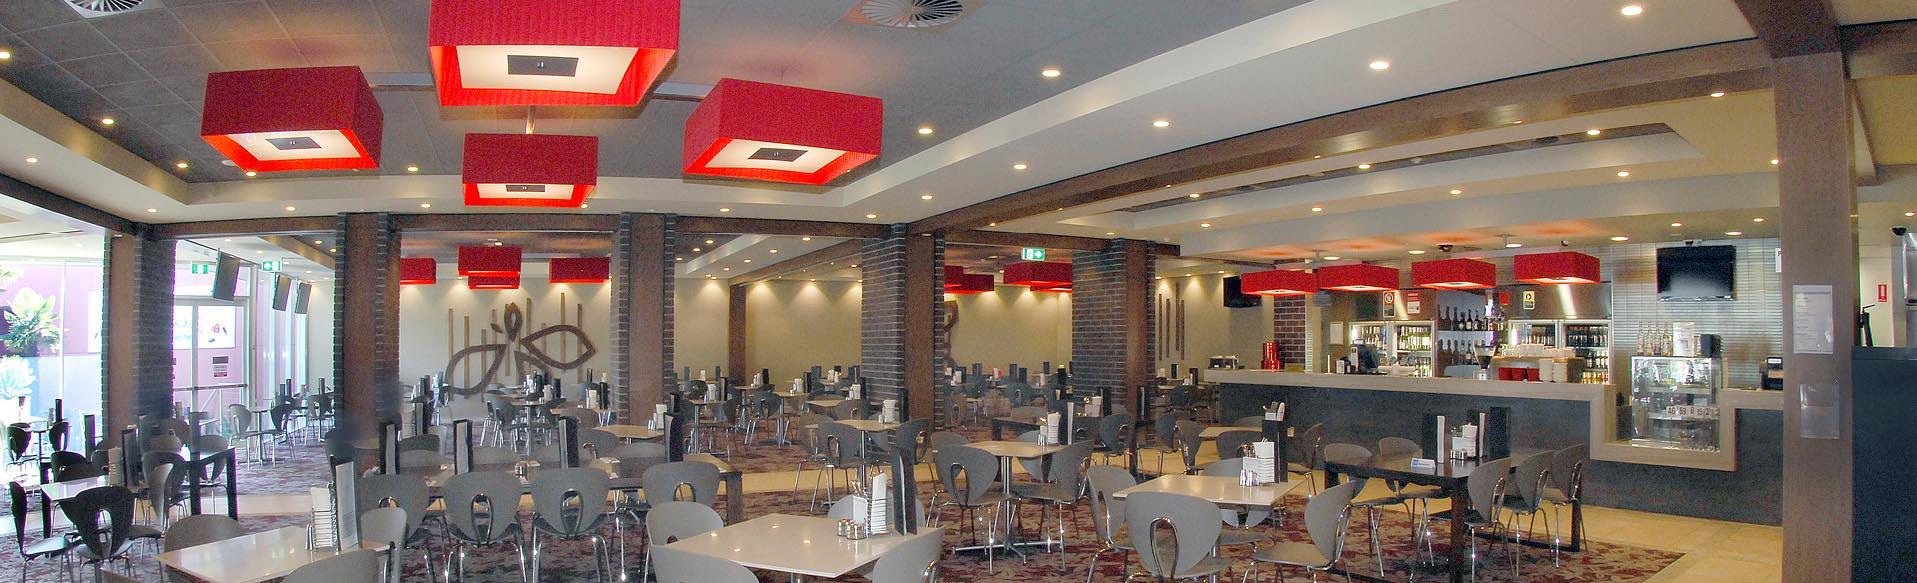 The dining area of the Waterstone Grill with red light shades and an abundance of indoor tables and chairs